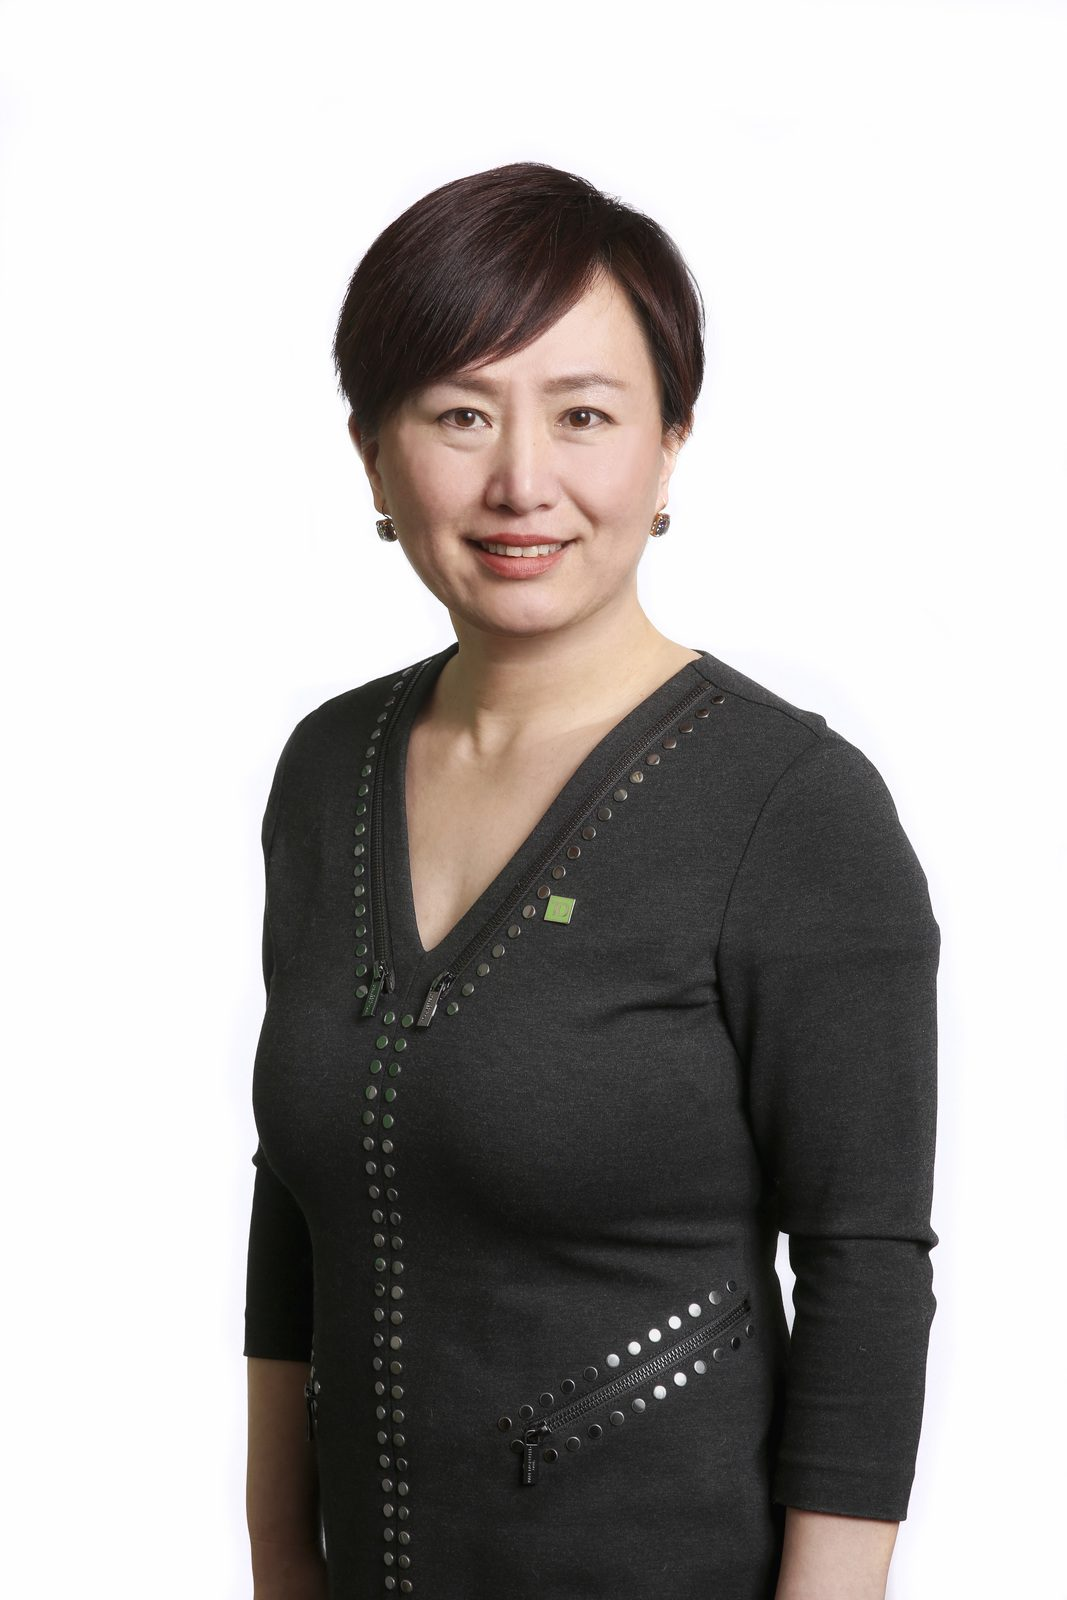 Cindy Gao - TD Investment Specialist